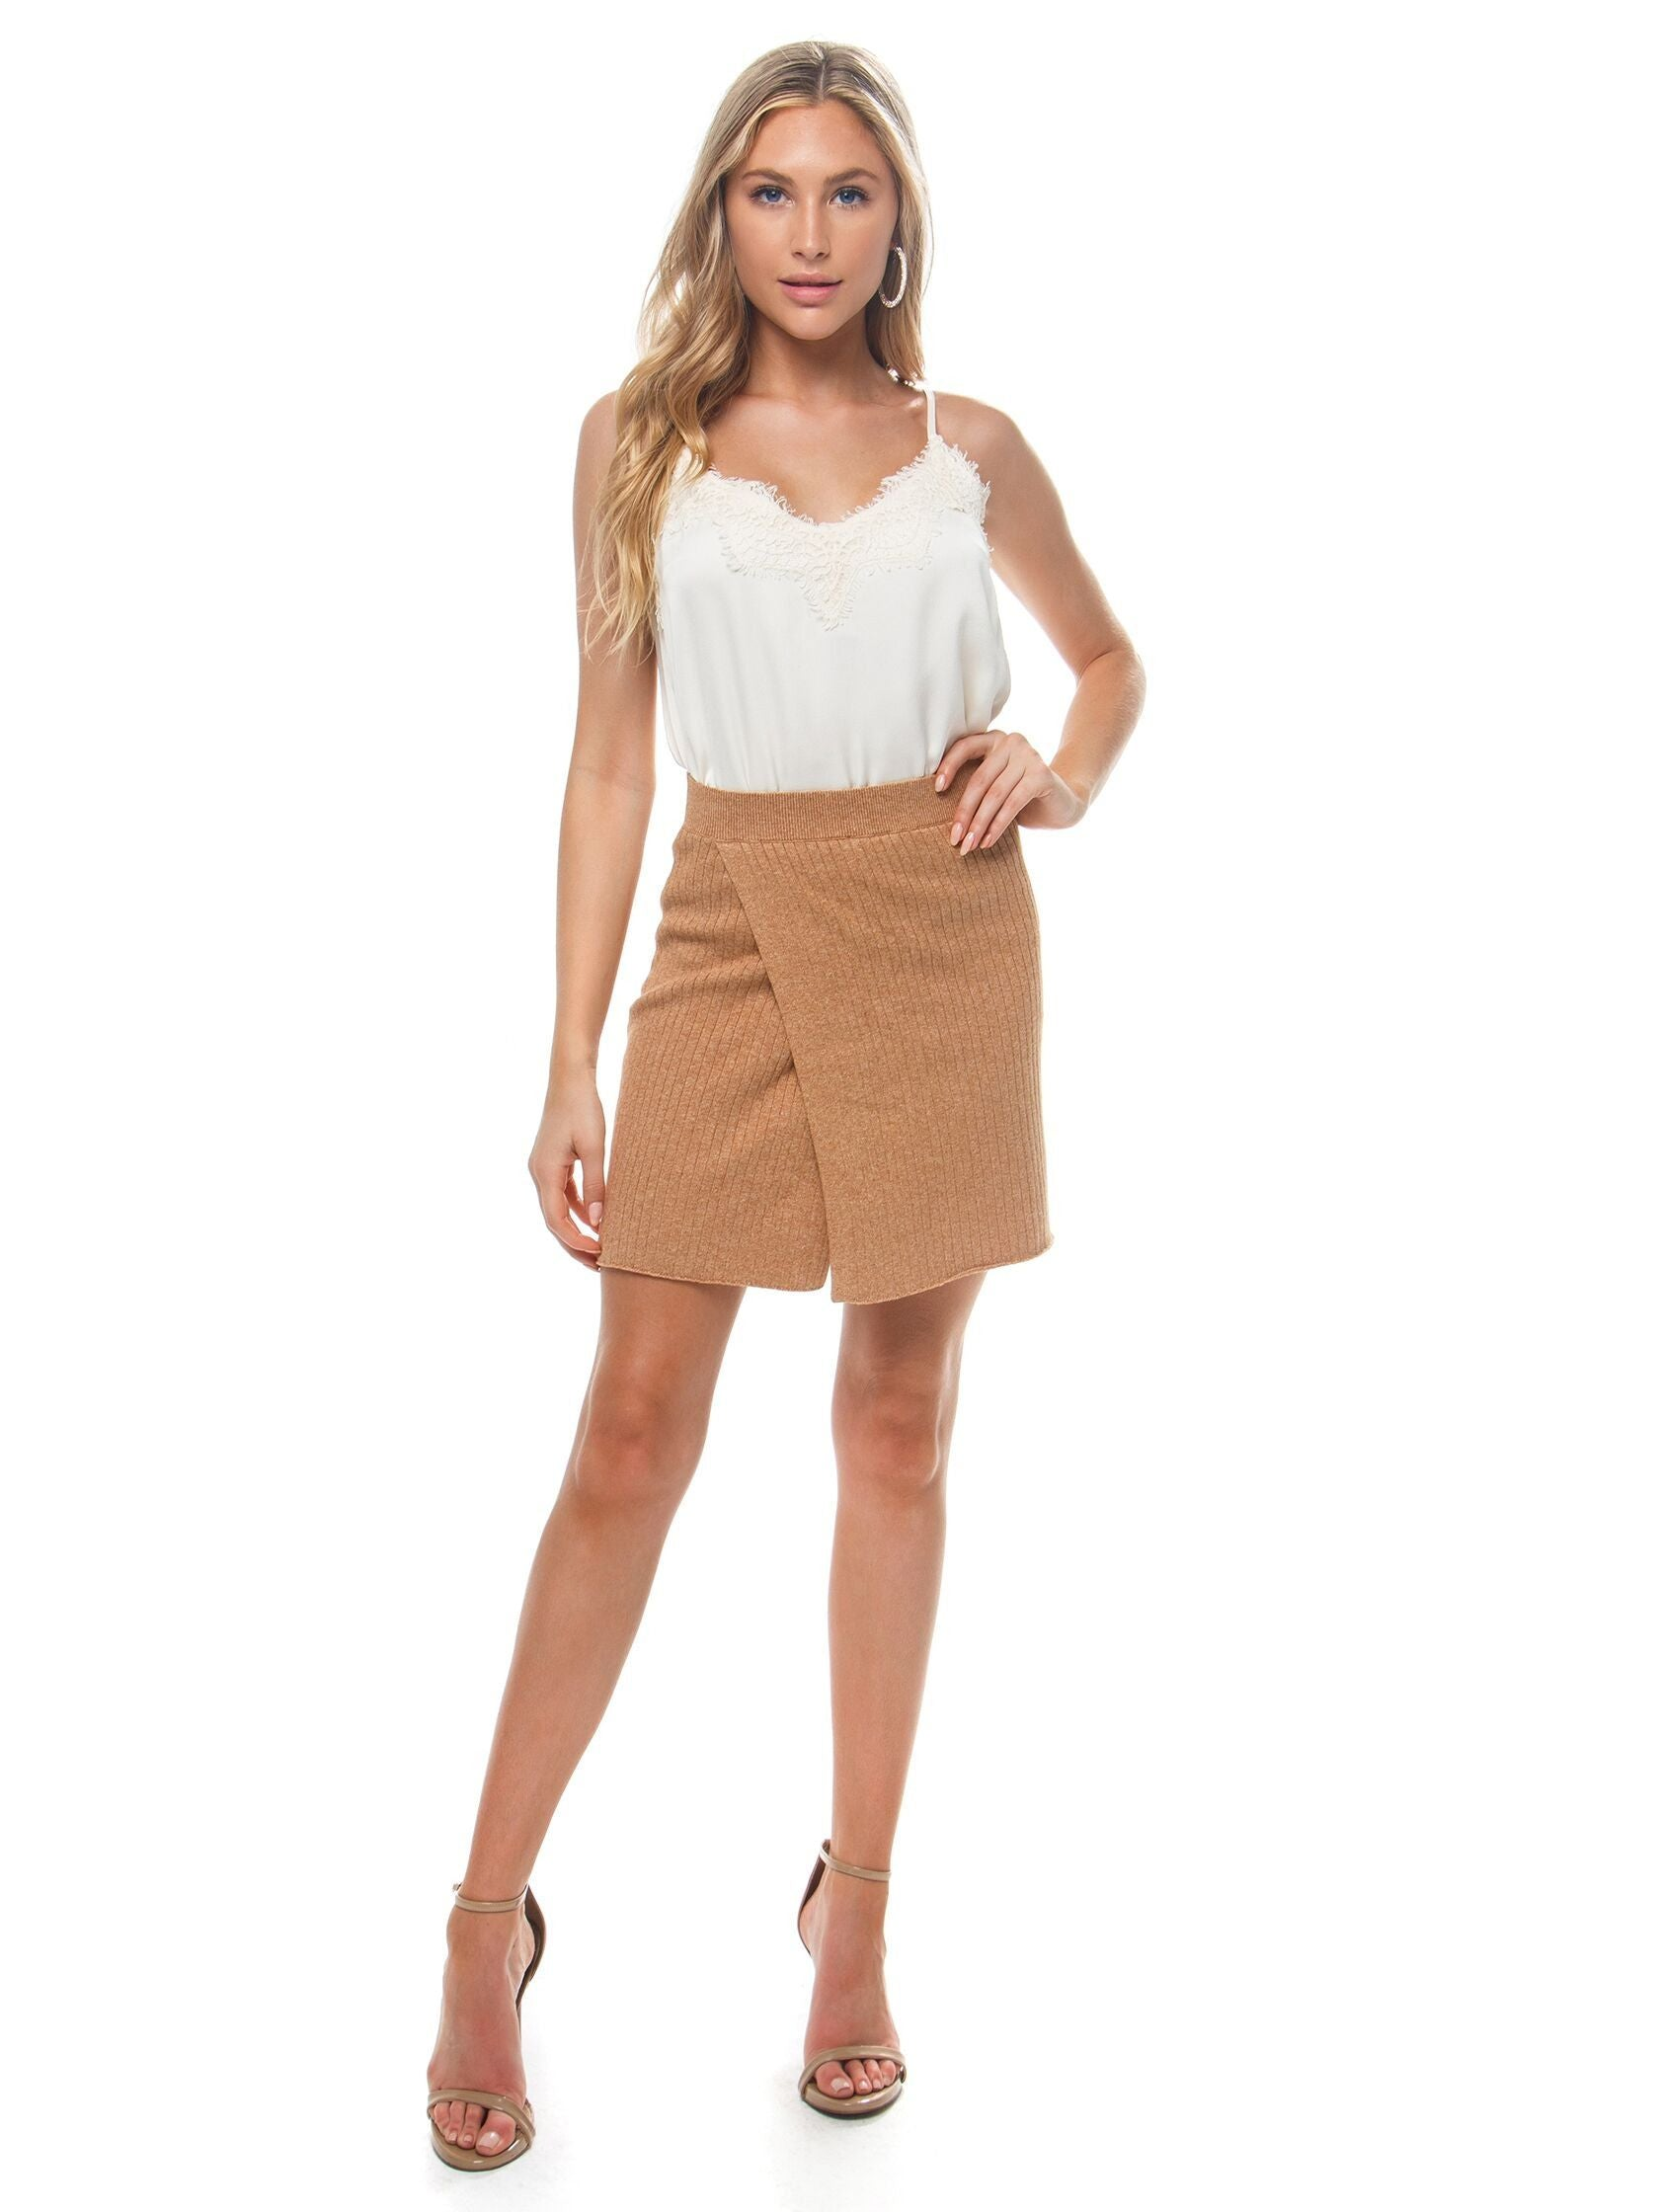 Girl wearing a skirt rental from Free People called Mod Wrap Skirt